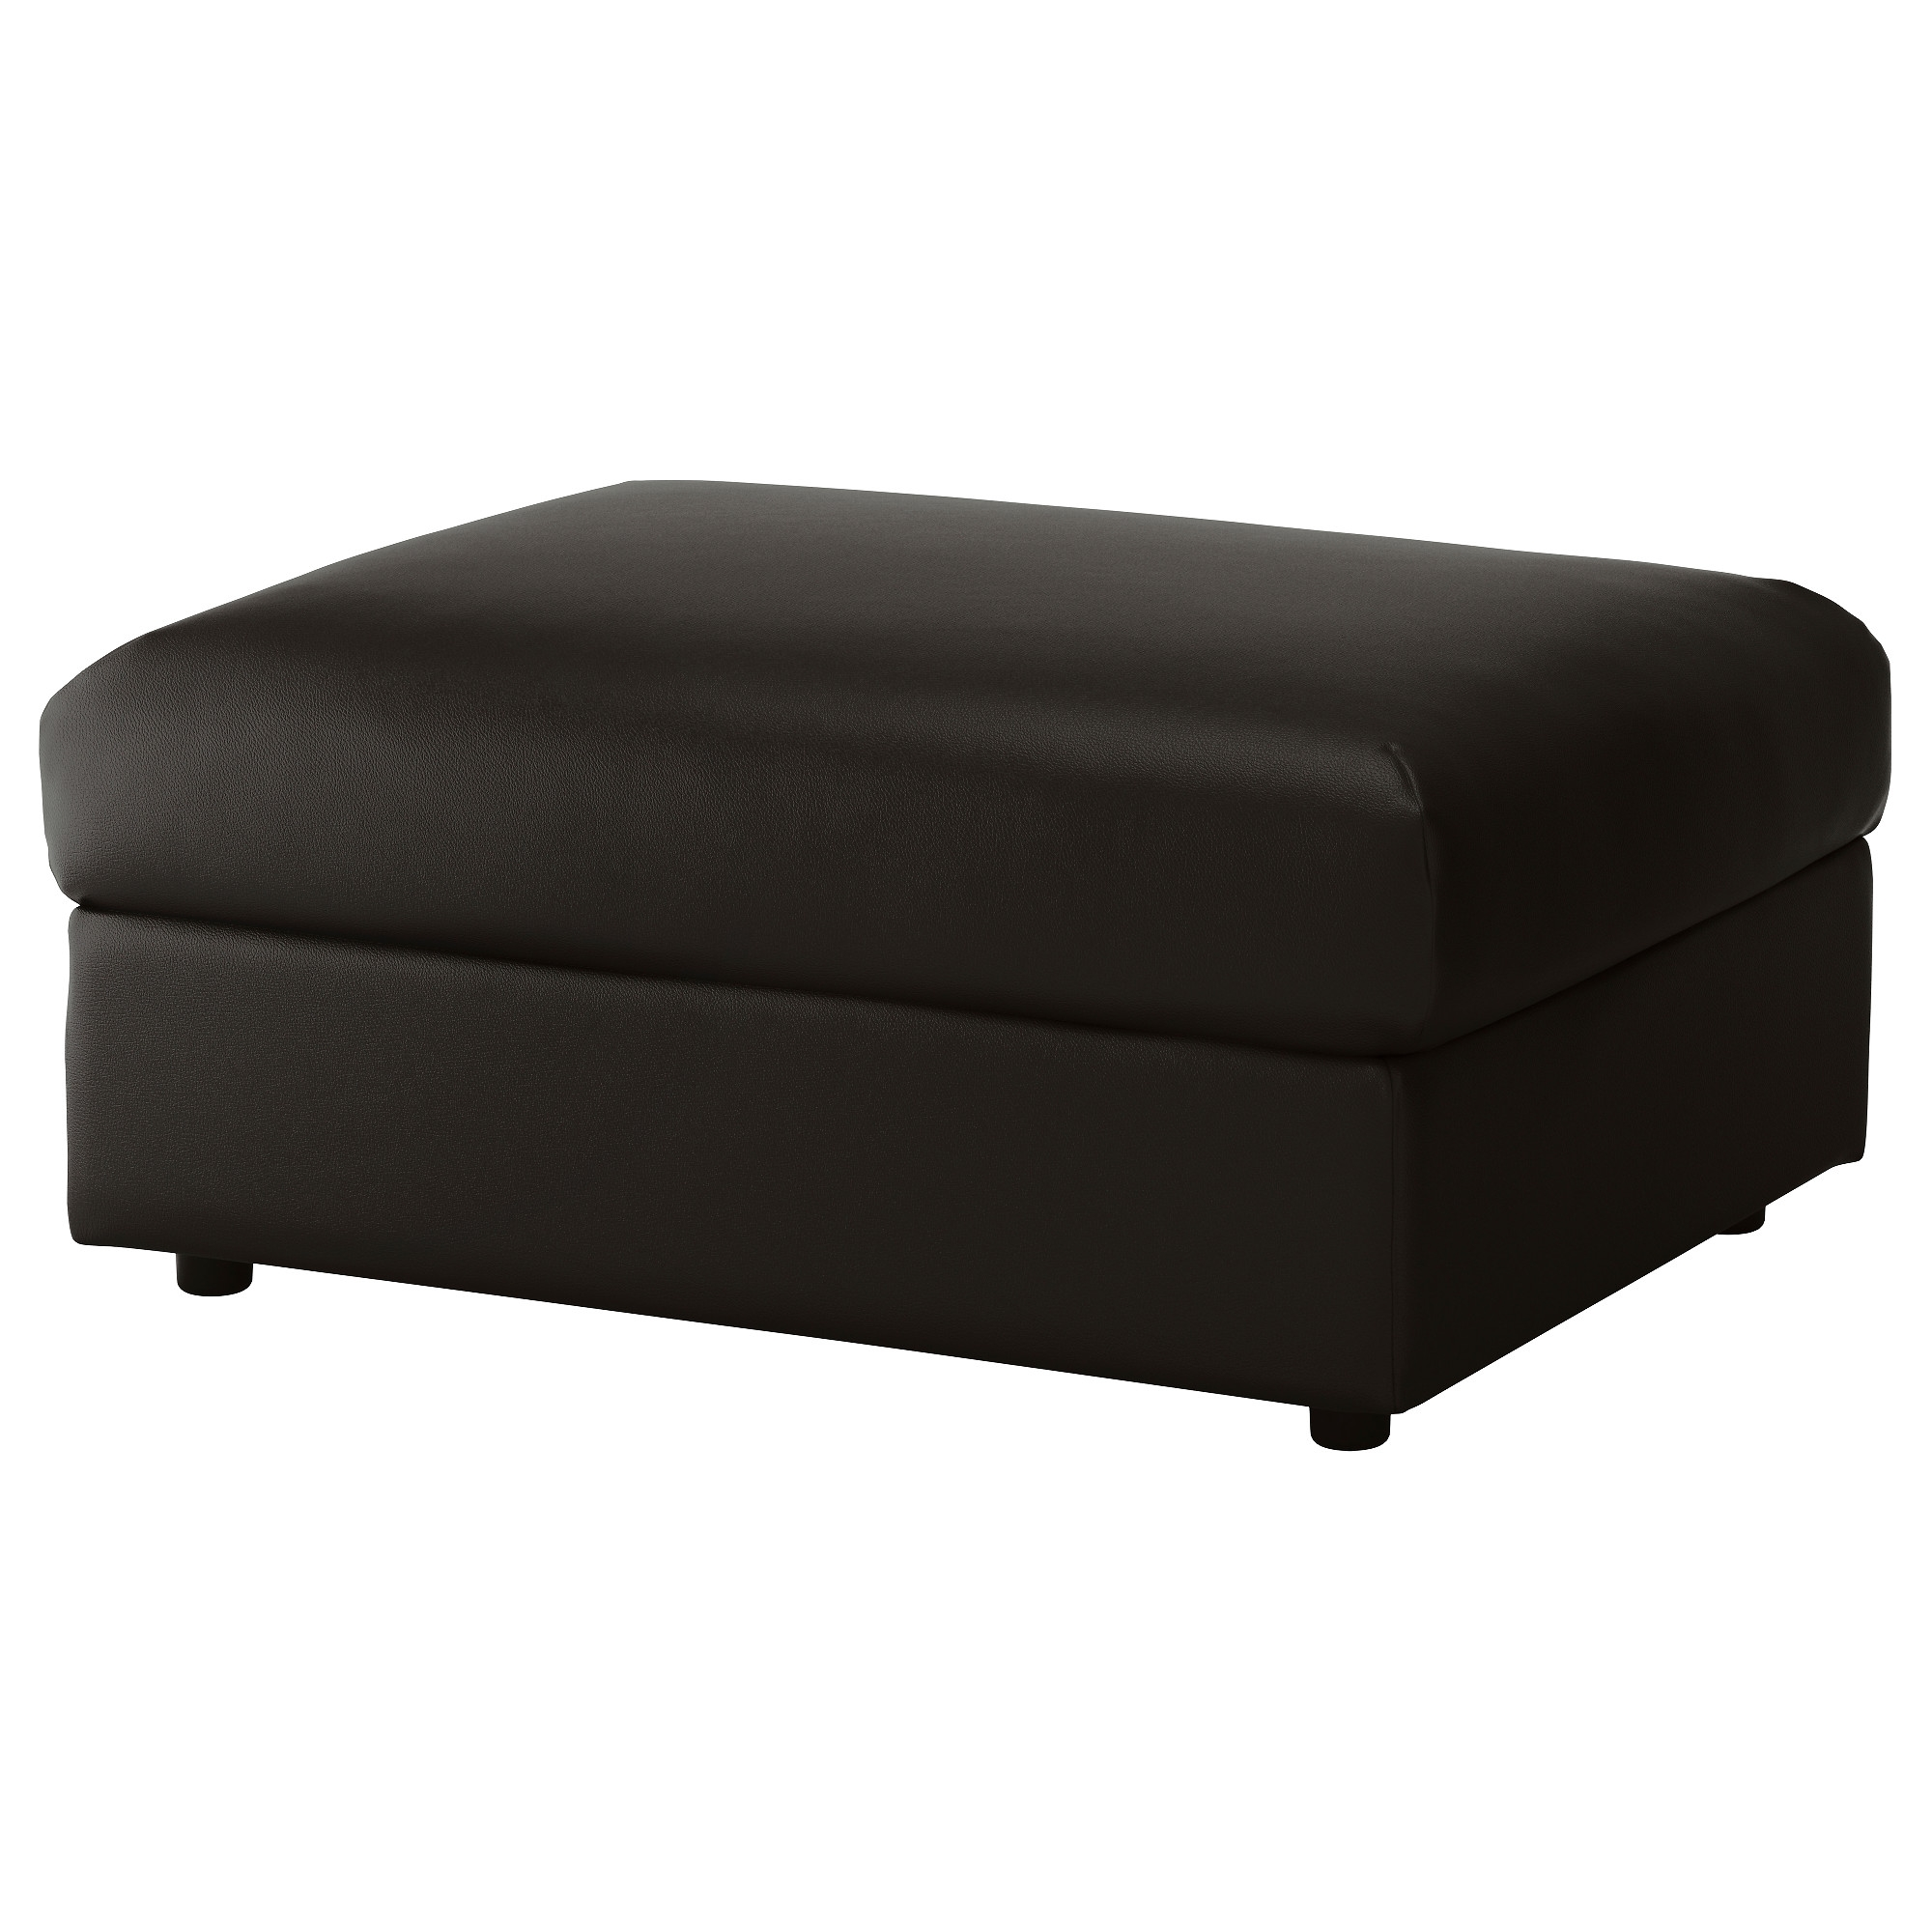 Vimle Footstool With Storage Farsta Black Ikea In Footstools And Pouffes With Storage (Image 14 of 15)